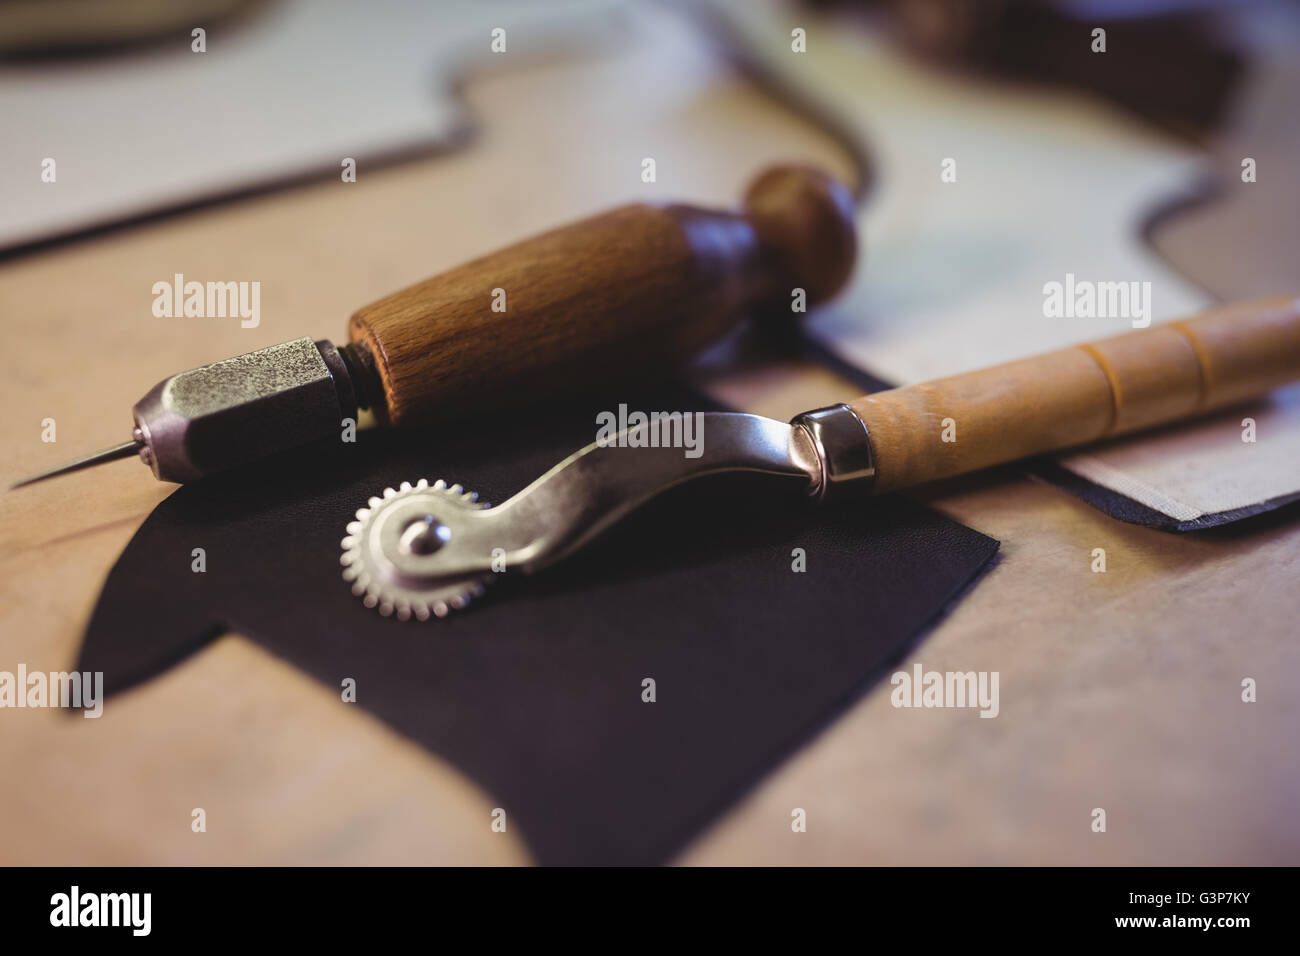 Close-up of tracing wheel and awl - Stock Image